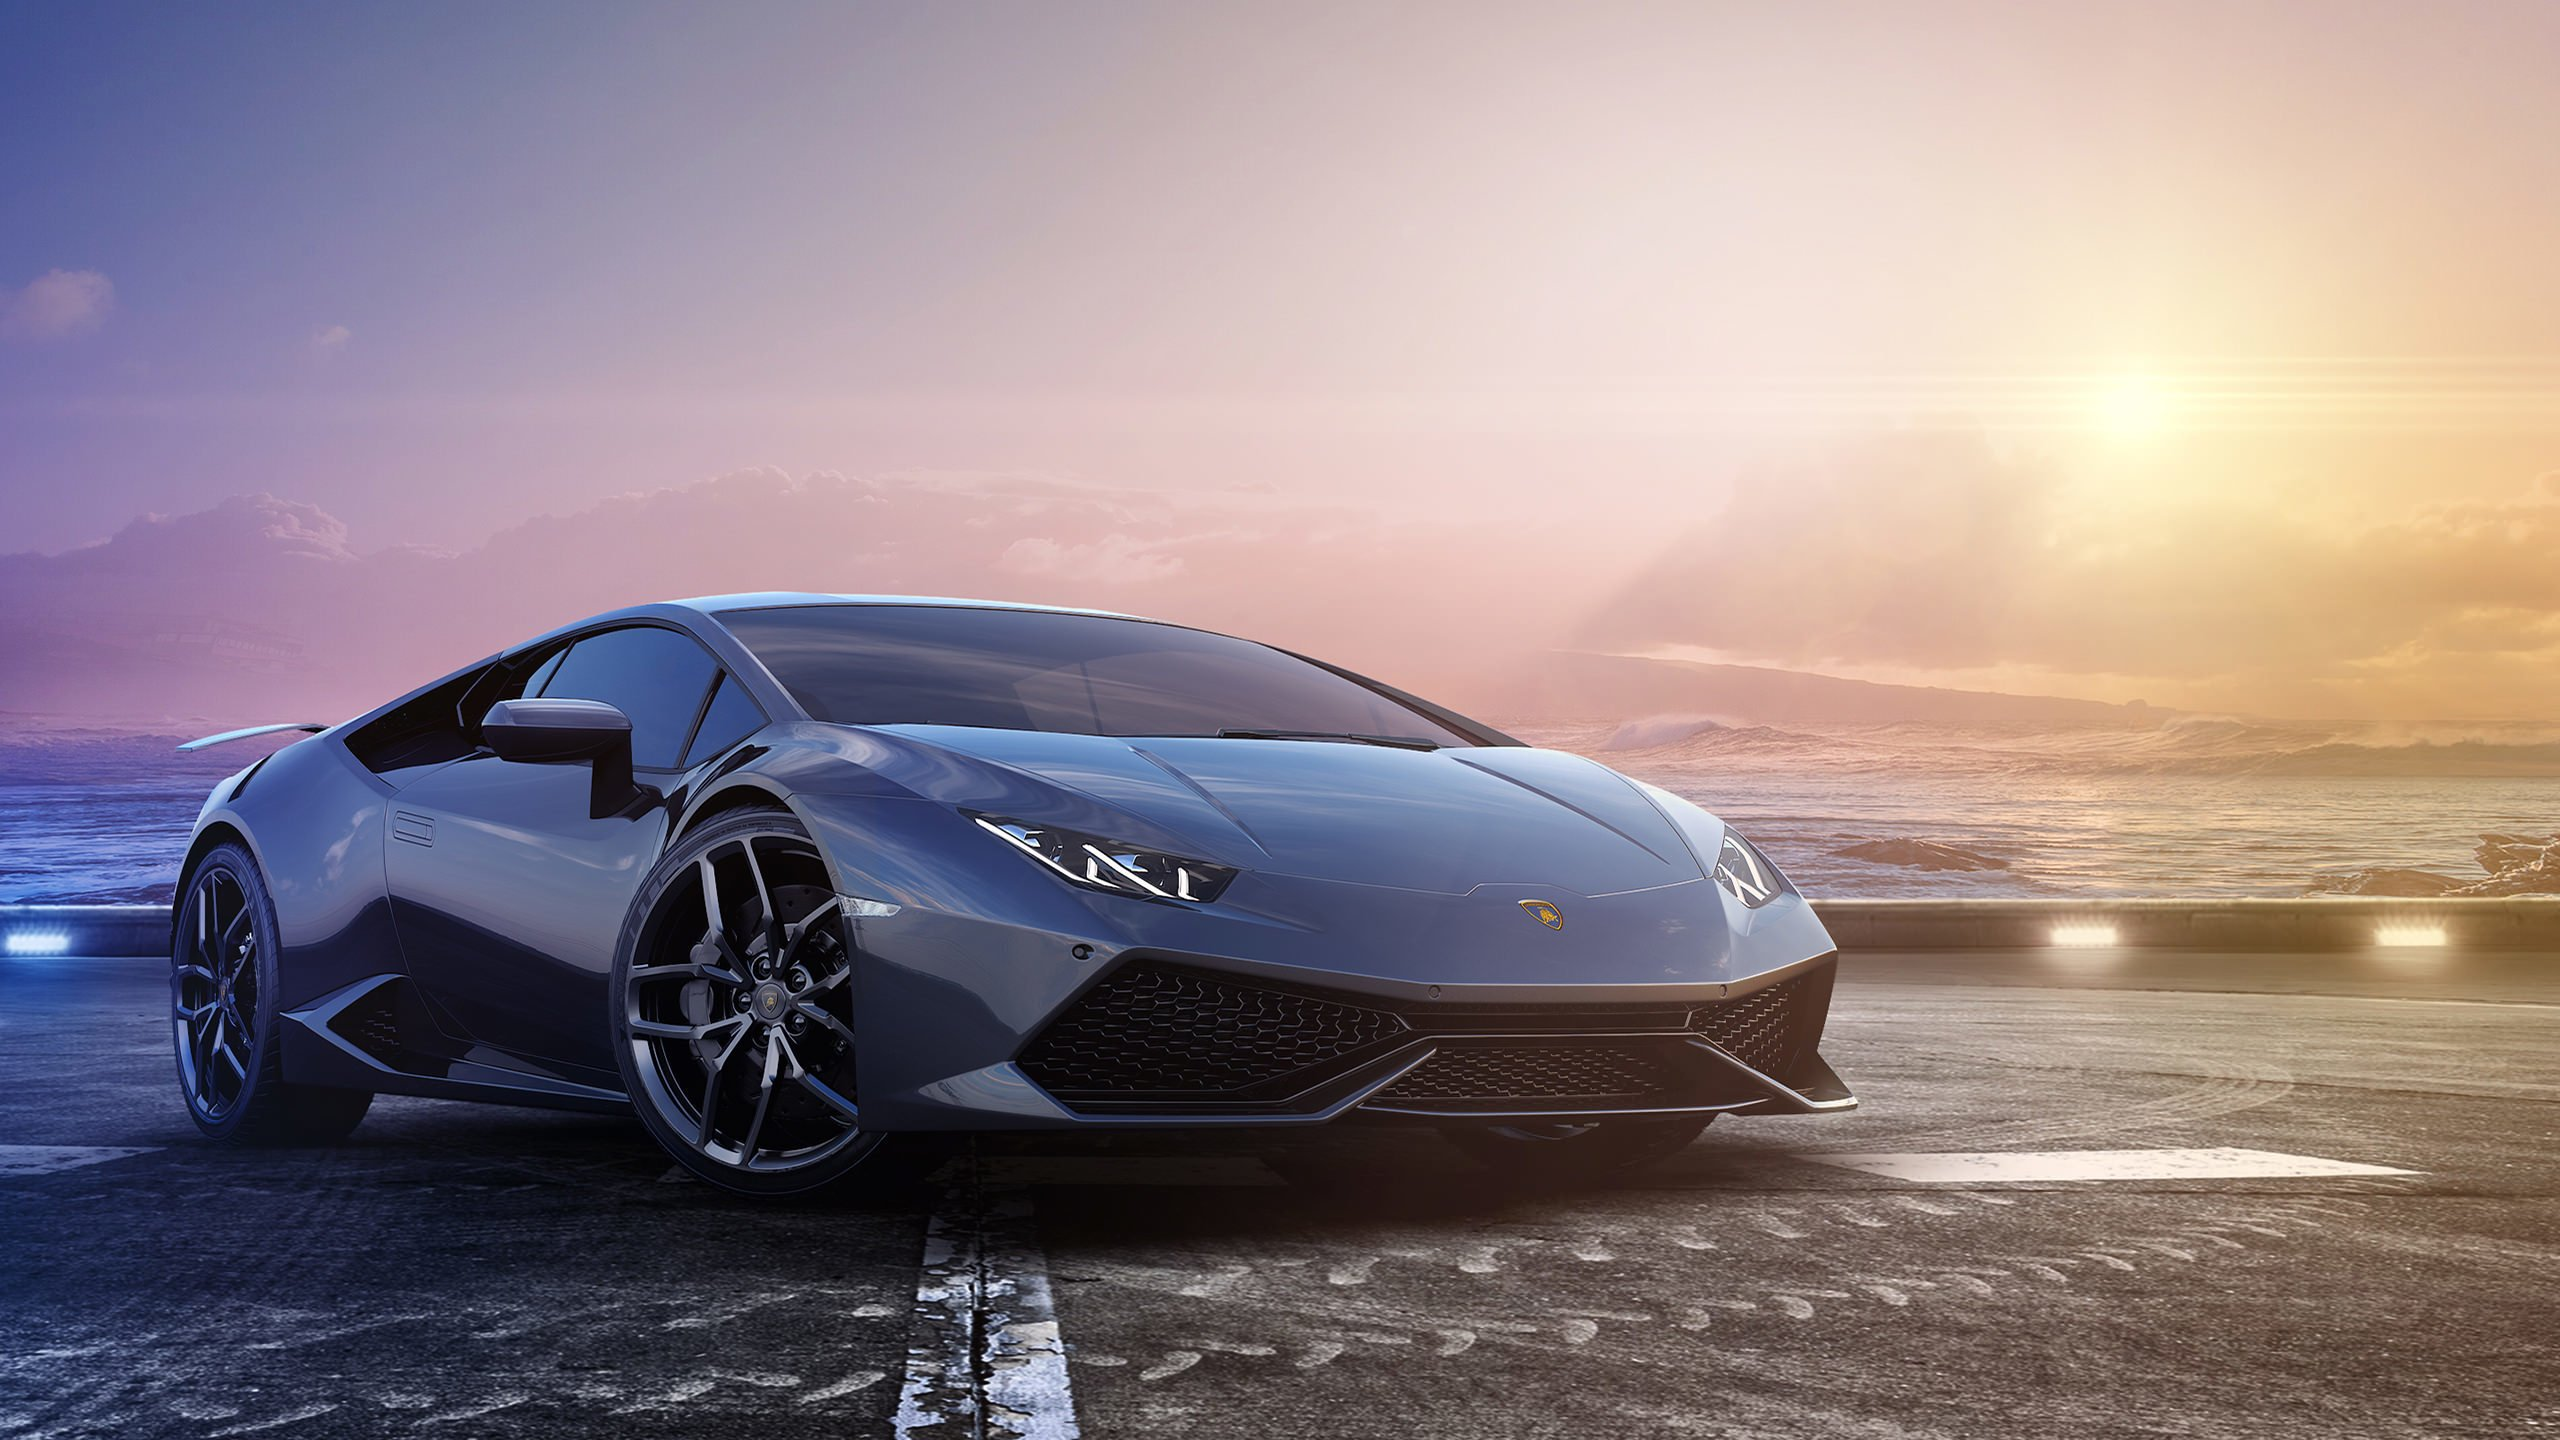 Lamborghini Wallpaper HD 40938 Wallpaper Download HD 2560x1440